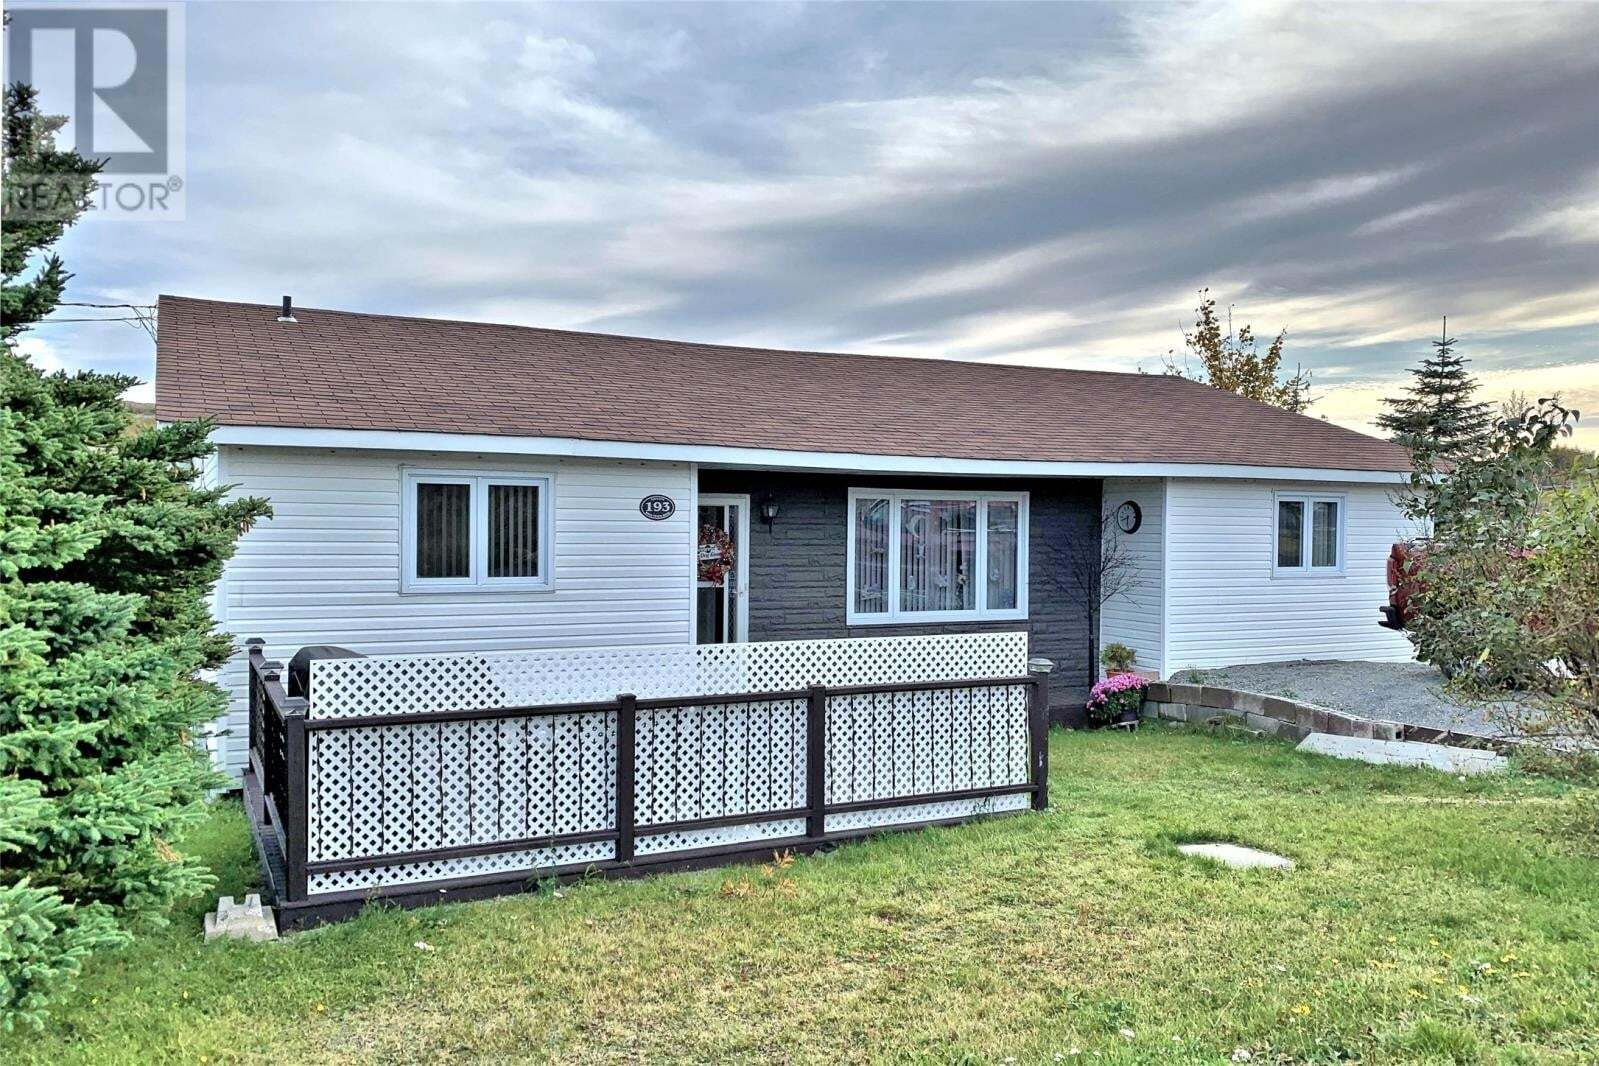 House for sale at 193 Back Track Rd Spaniards Bay Newfoundland - MLS: 1205358